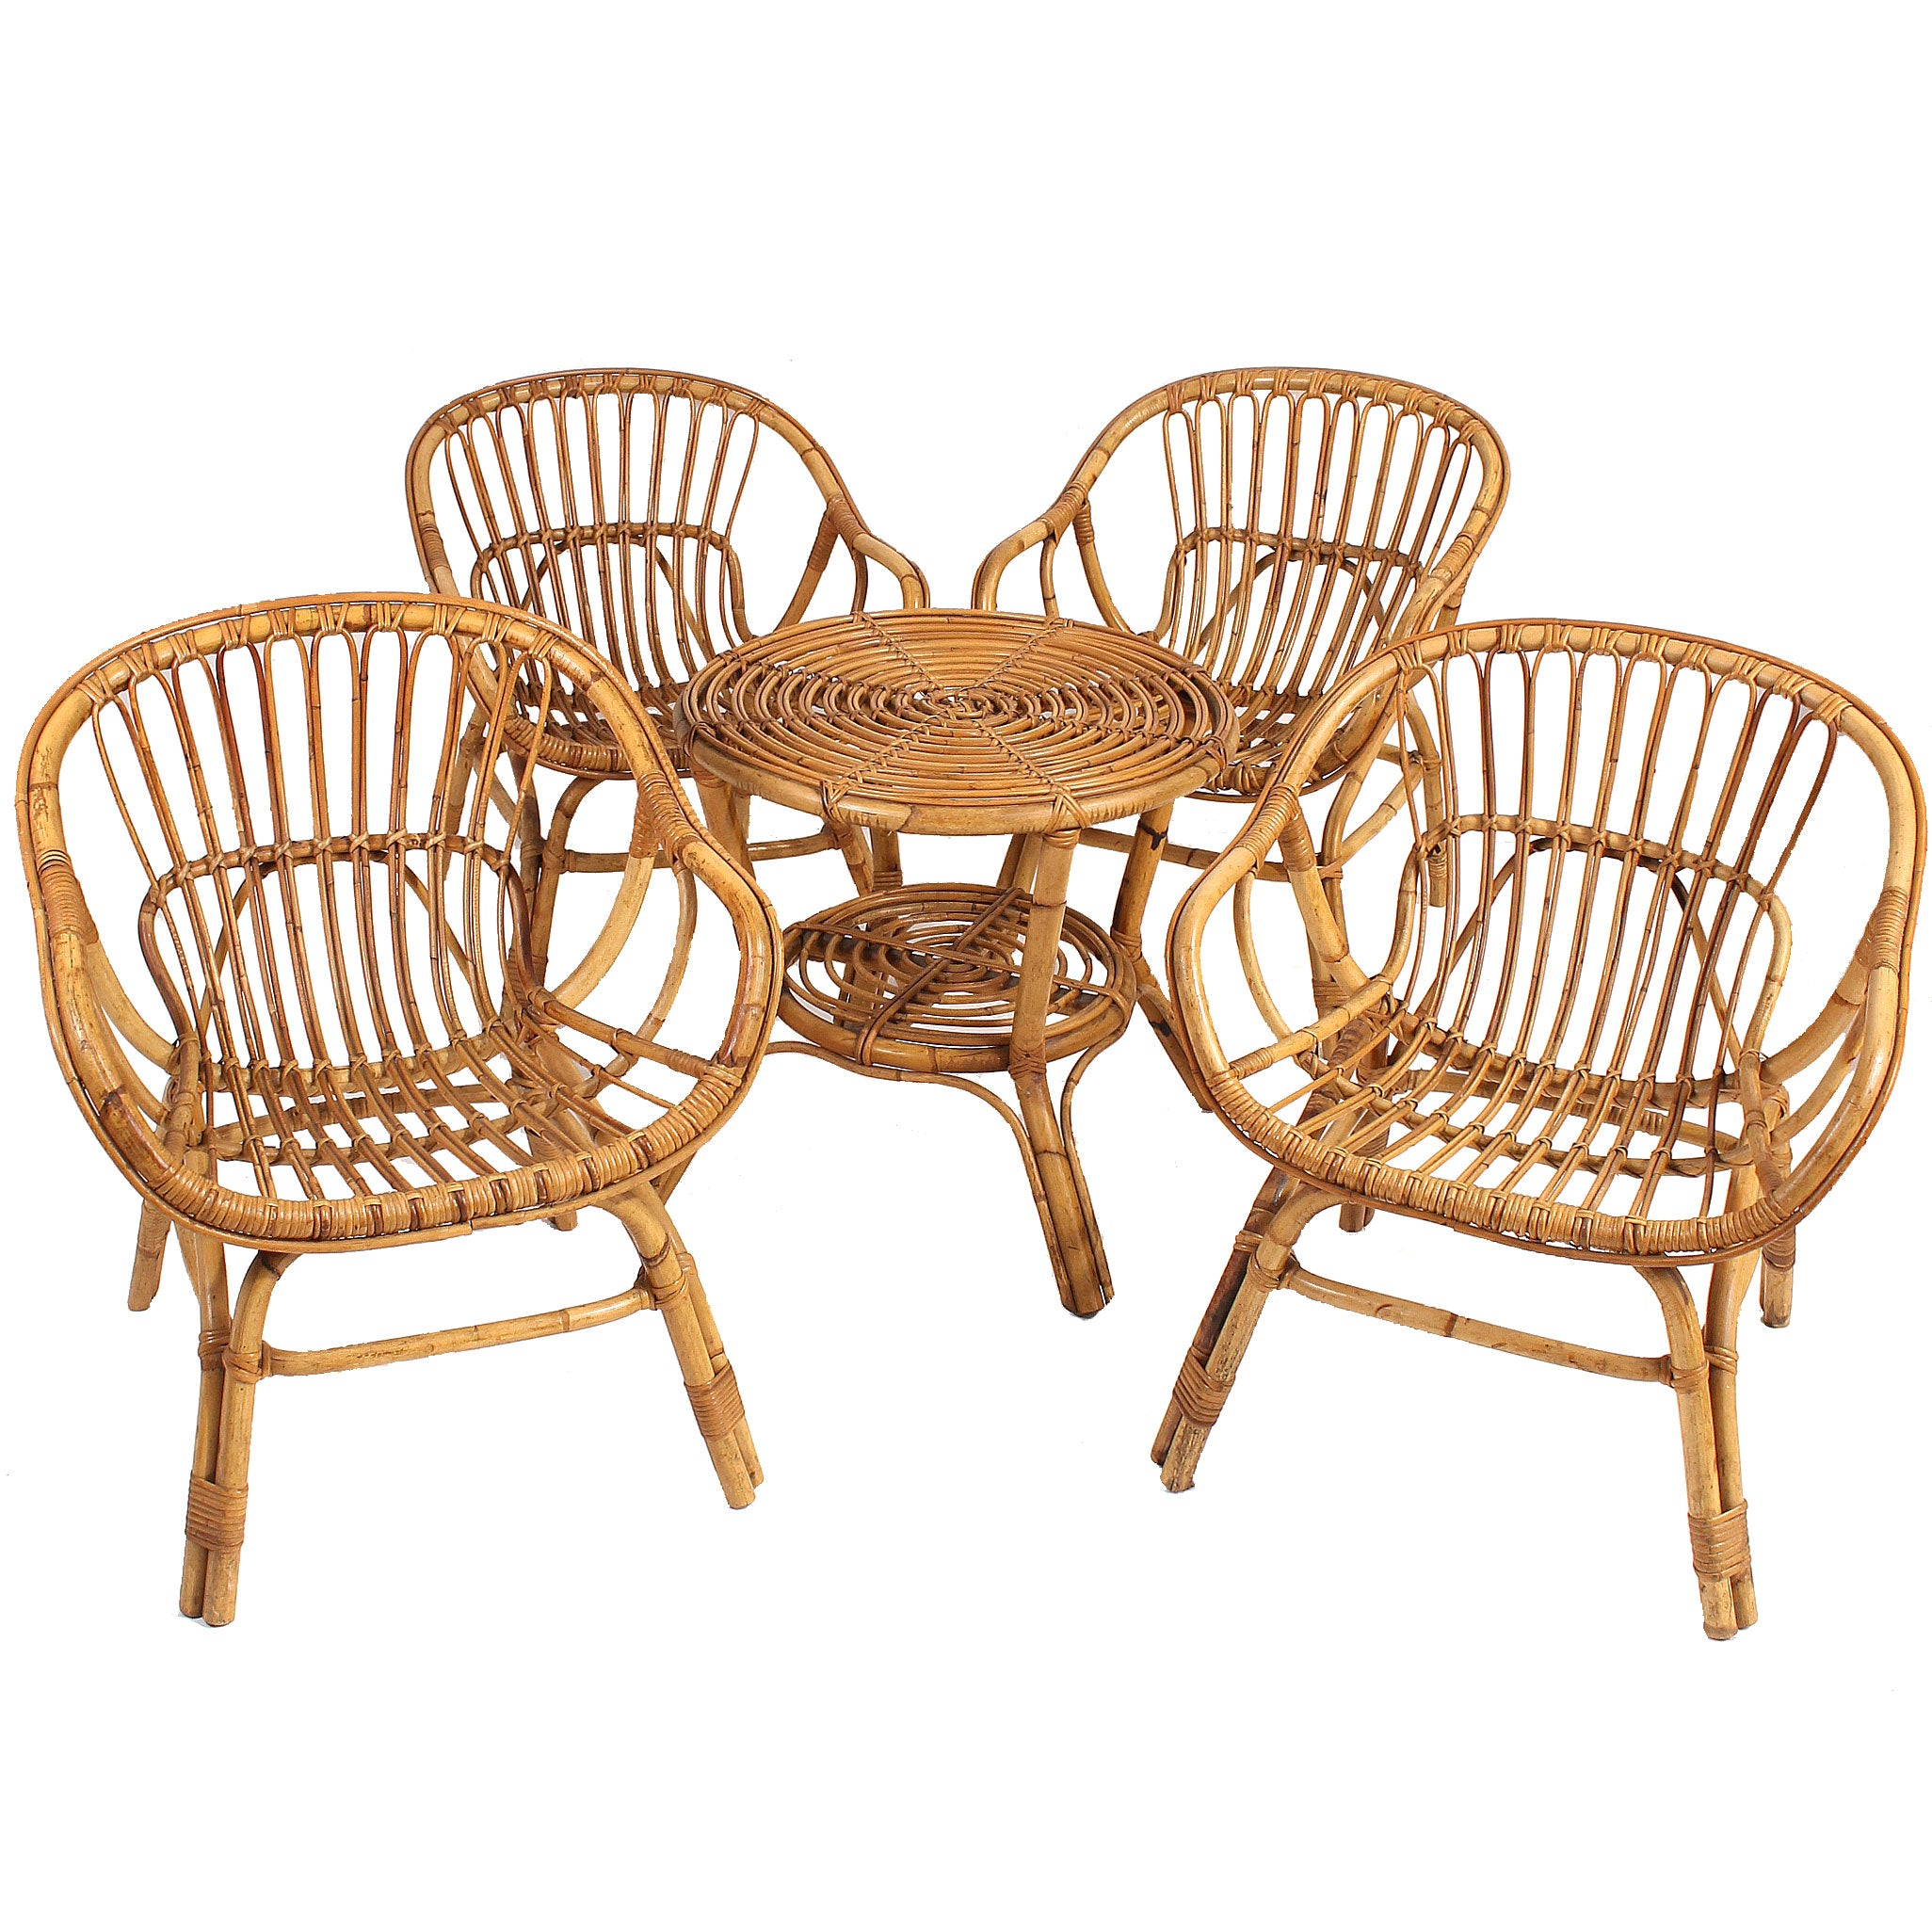 Vintage Italian Rattan Lounge Chairs And Table Set   Fatto A Mano Antiques